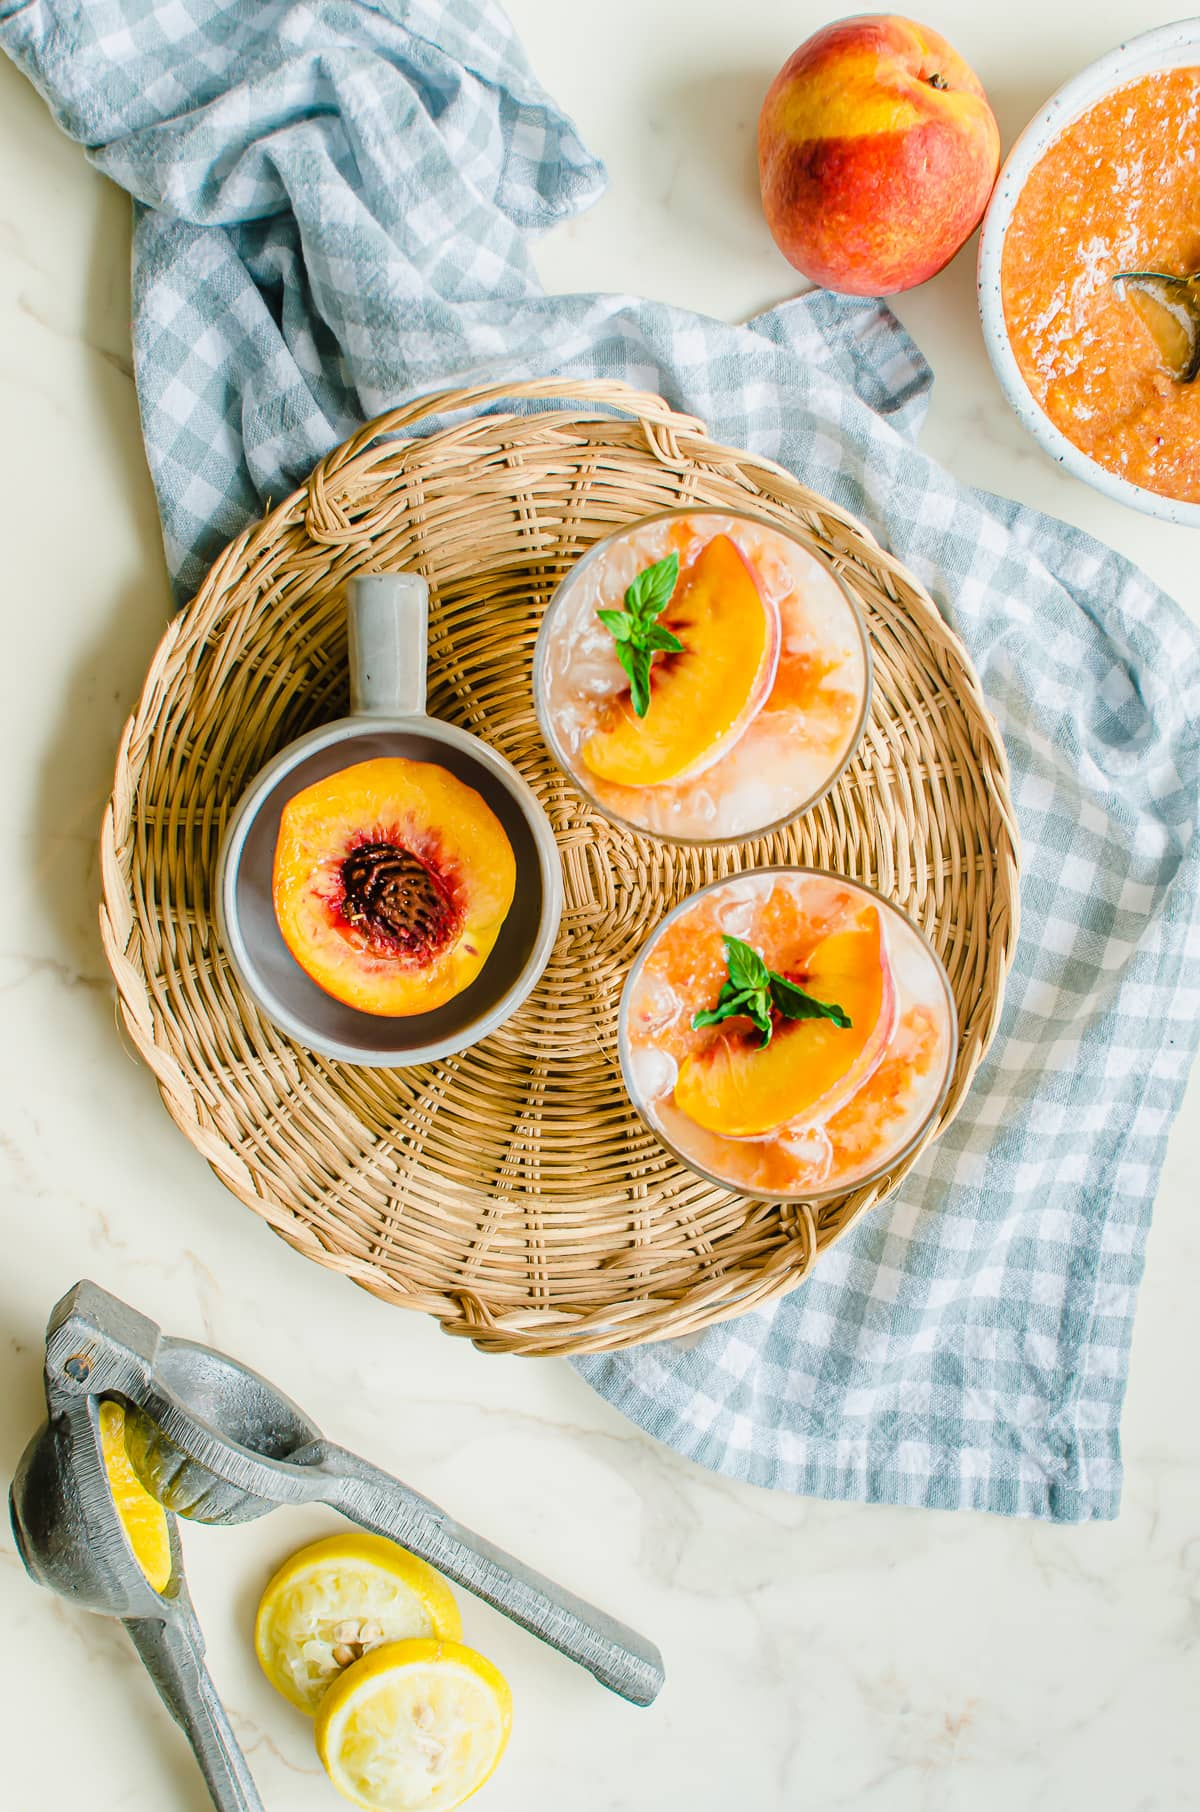 Overhead shot of styled glasses of lemonade with peaches and lemons on the side.